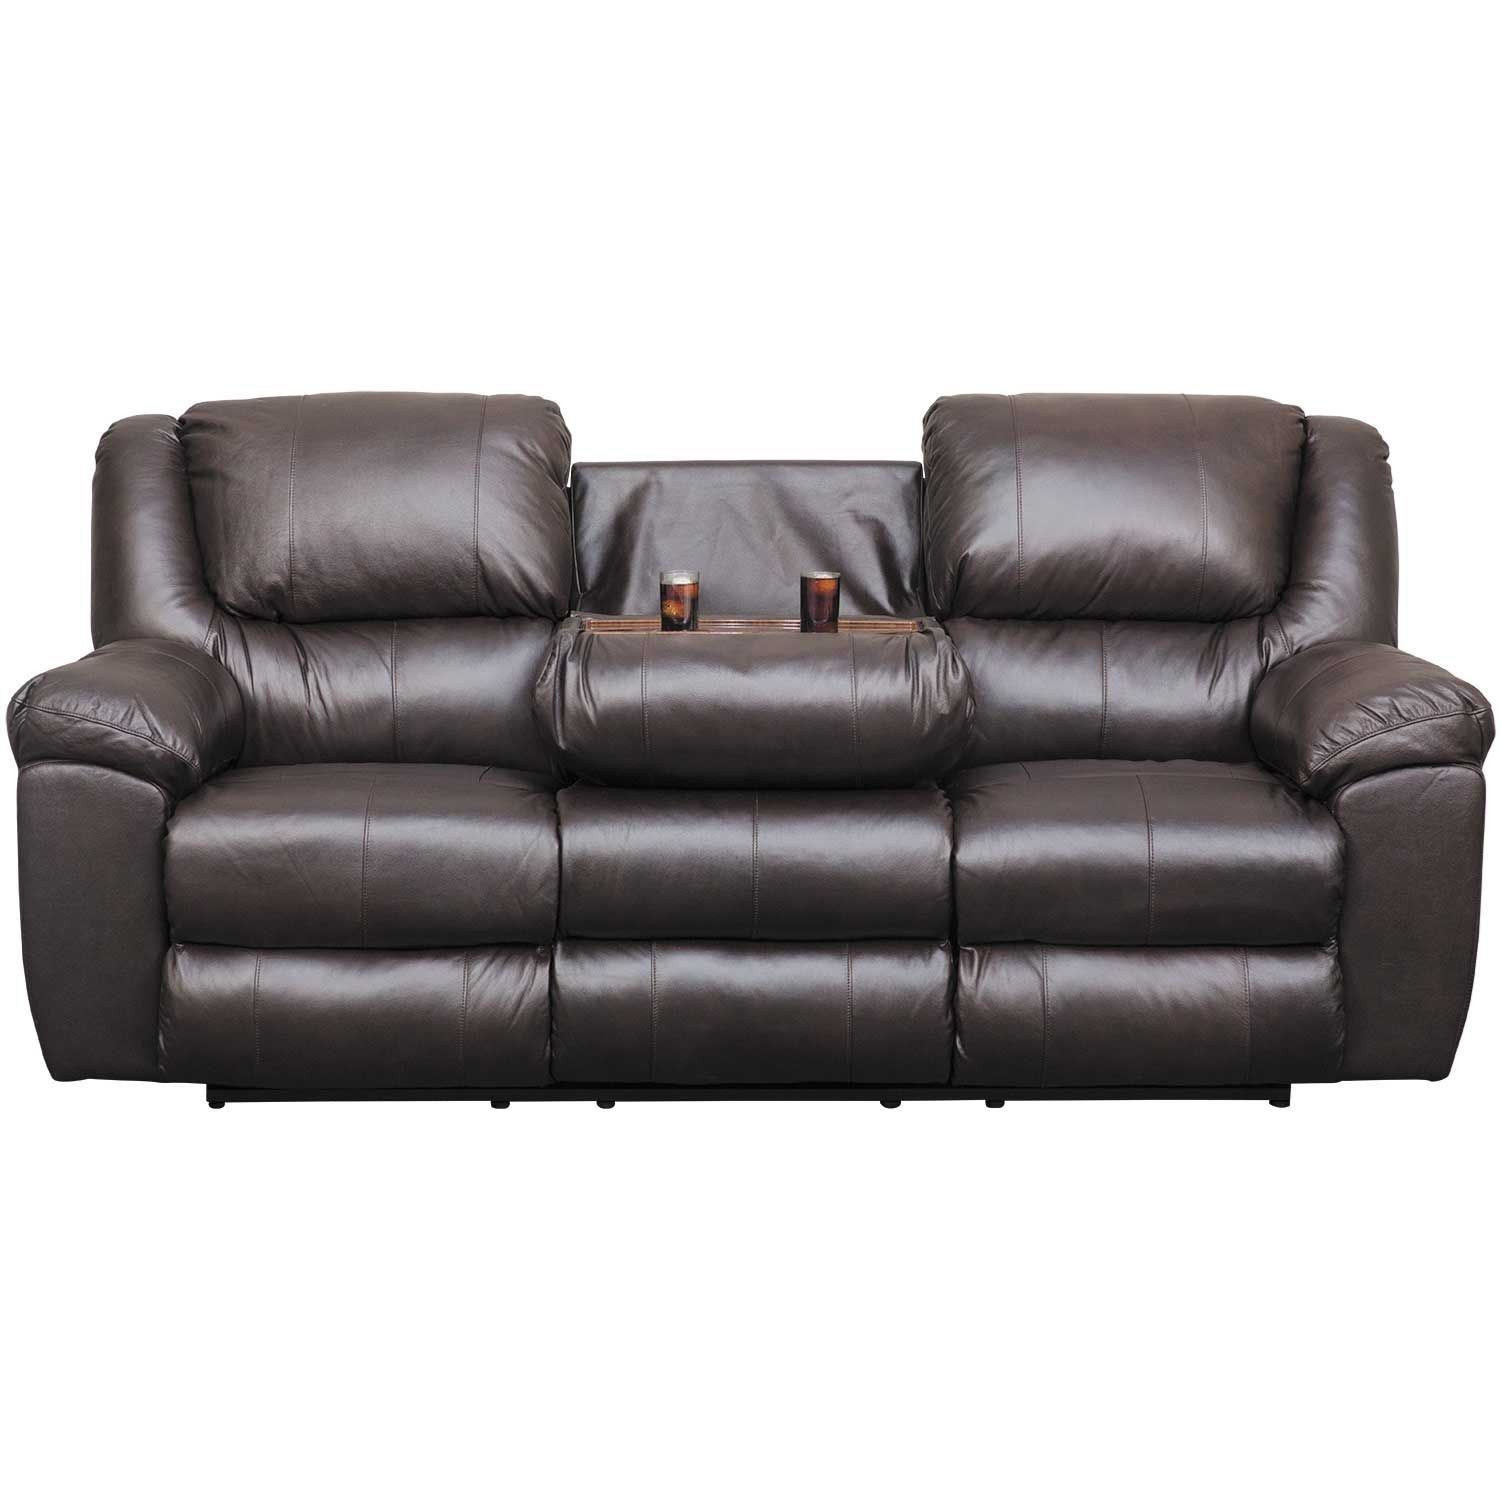 Best ideas about Triple Reclining Sofa . Save or Pin Italian Leather Triple Power Reclining Sofa with Drop Now.